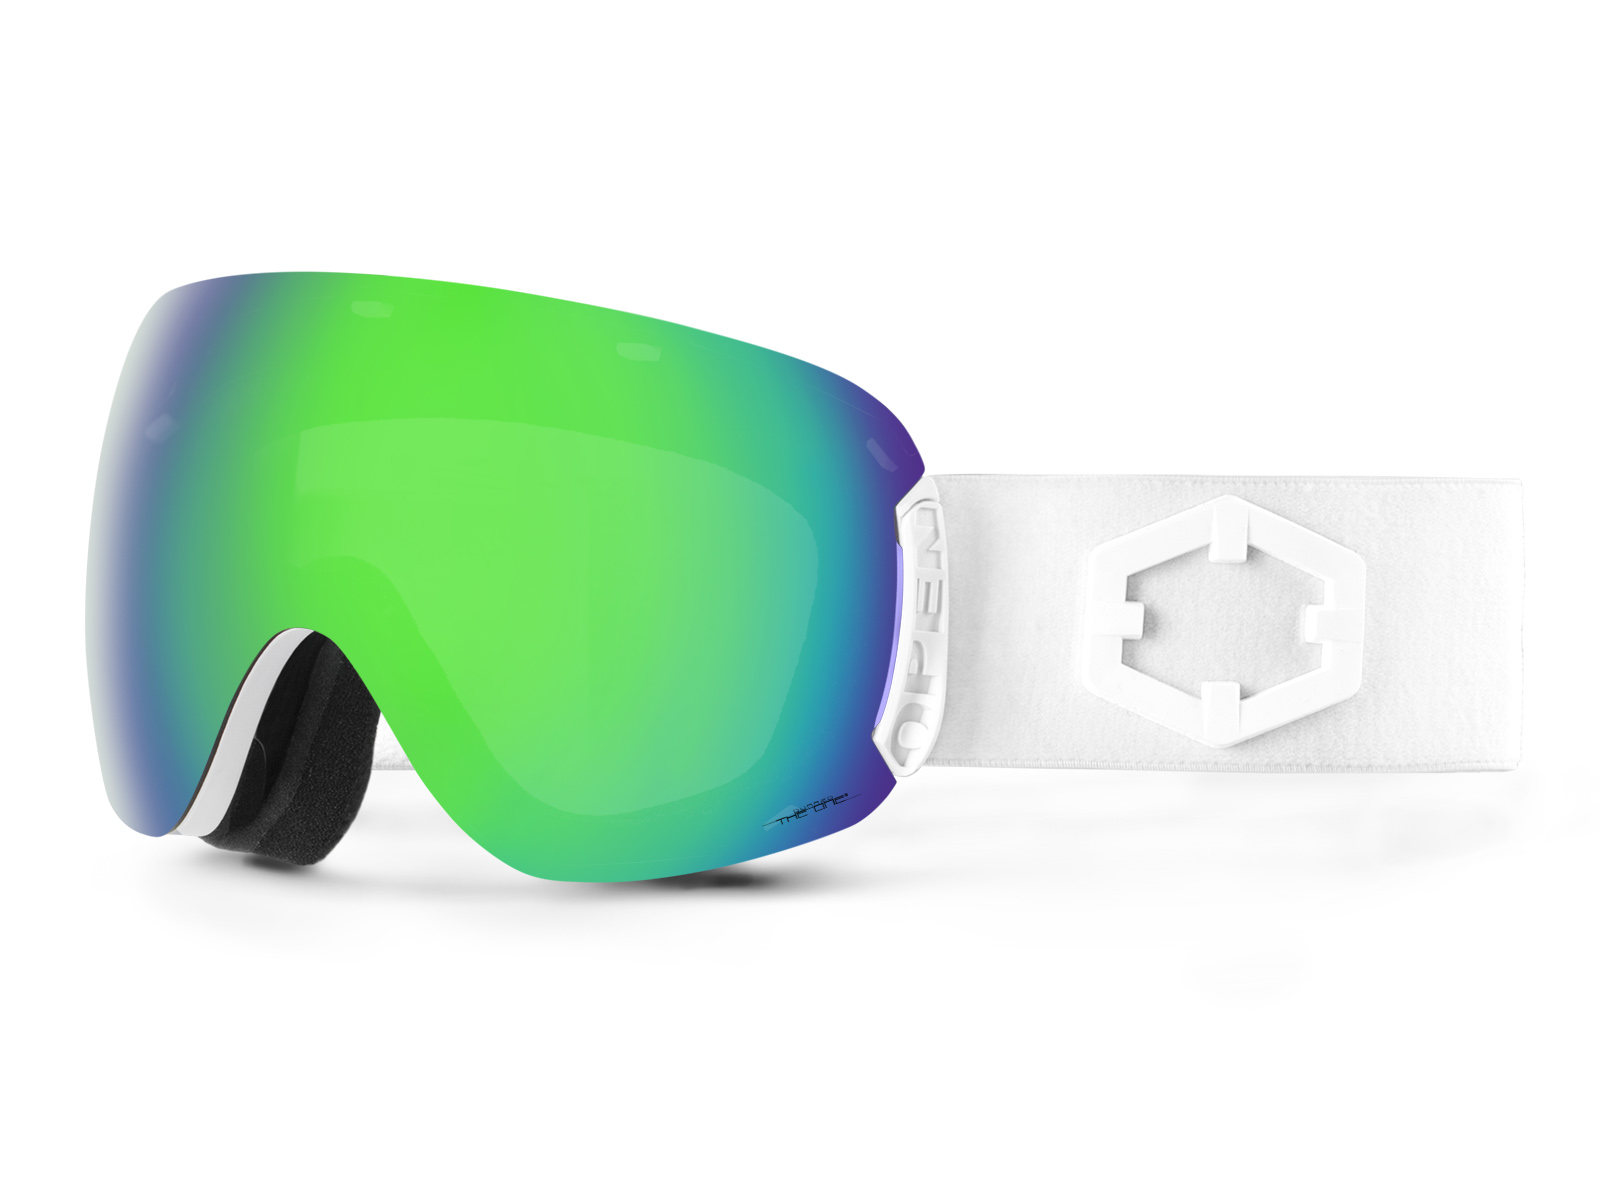 OPEN WHITE THE ONE QUARZO GOGGLE